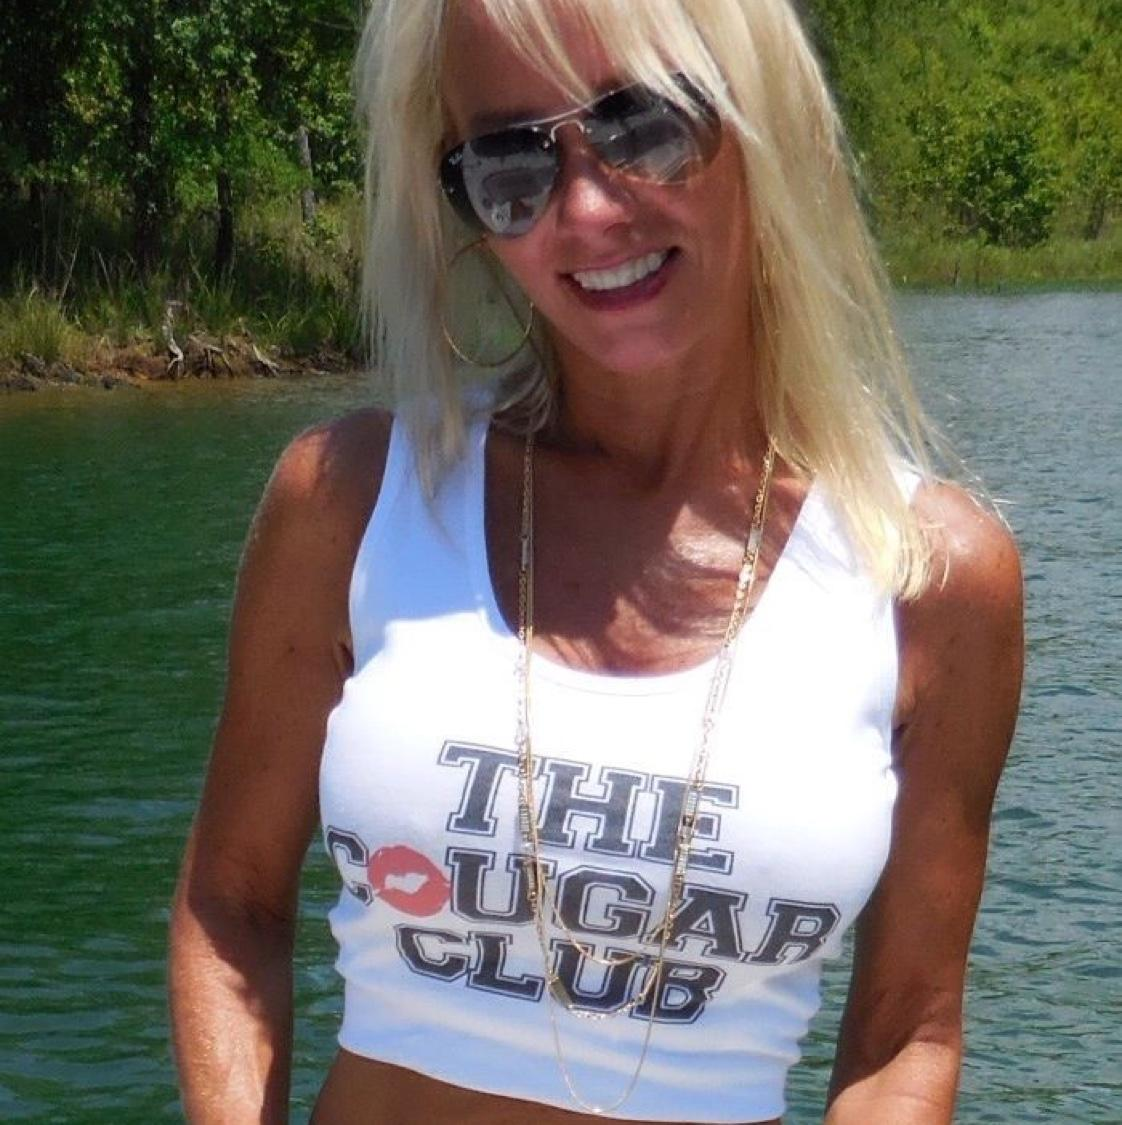 old bight milf personals Olderwomendatingcom is the leading cougar dating site - for older women dating younger men and older men looking for older womensignup for free.